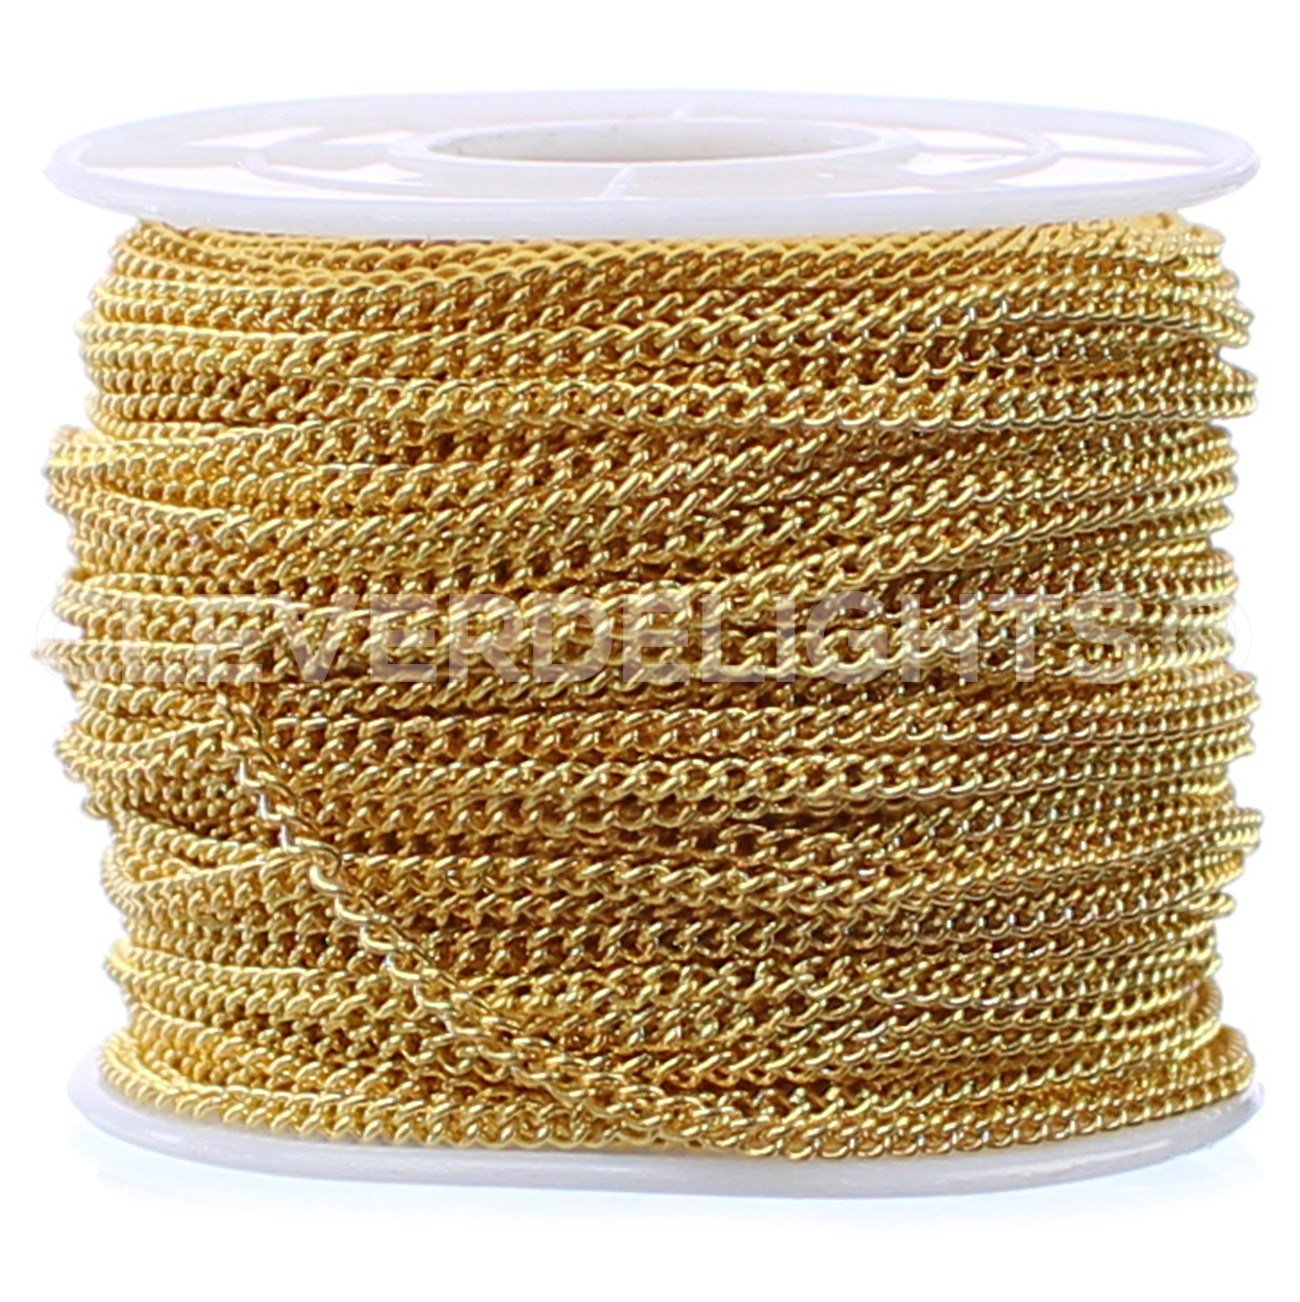 CleverDelights Curb Chain Spool - 2.2x3mm Link - Gold Color - 30 Feet - Bulk Jewelry Roll by CleverDelights (Image #1)